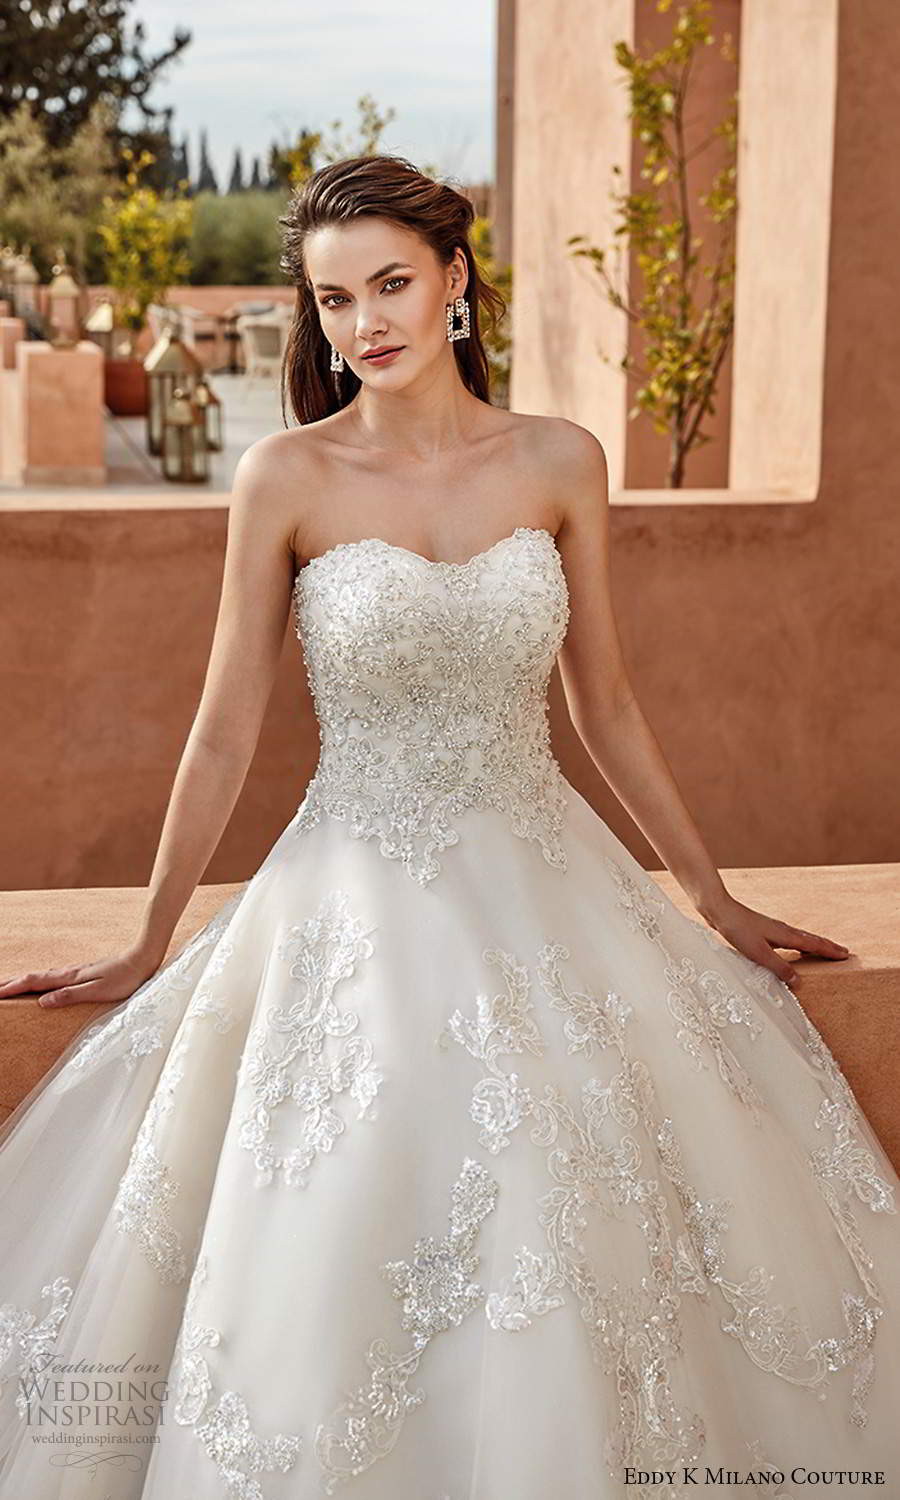 eddy k 2021 milano couture bridal strapless semi sweetheart neckline heavily embellished bodicy a line ball gown wedding dress chapel train (10) zv